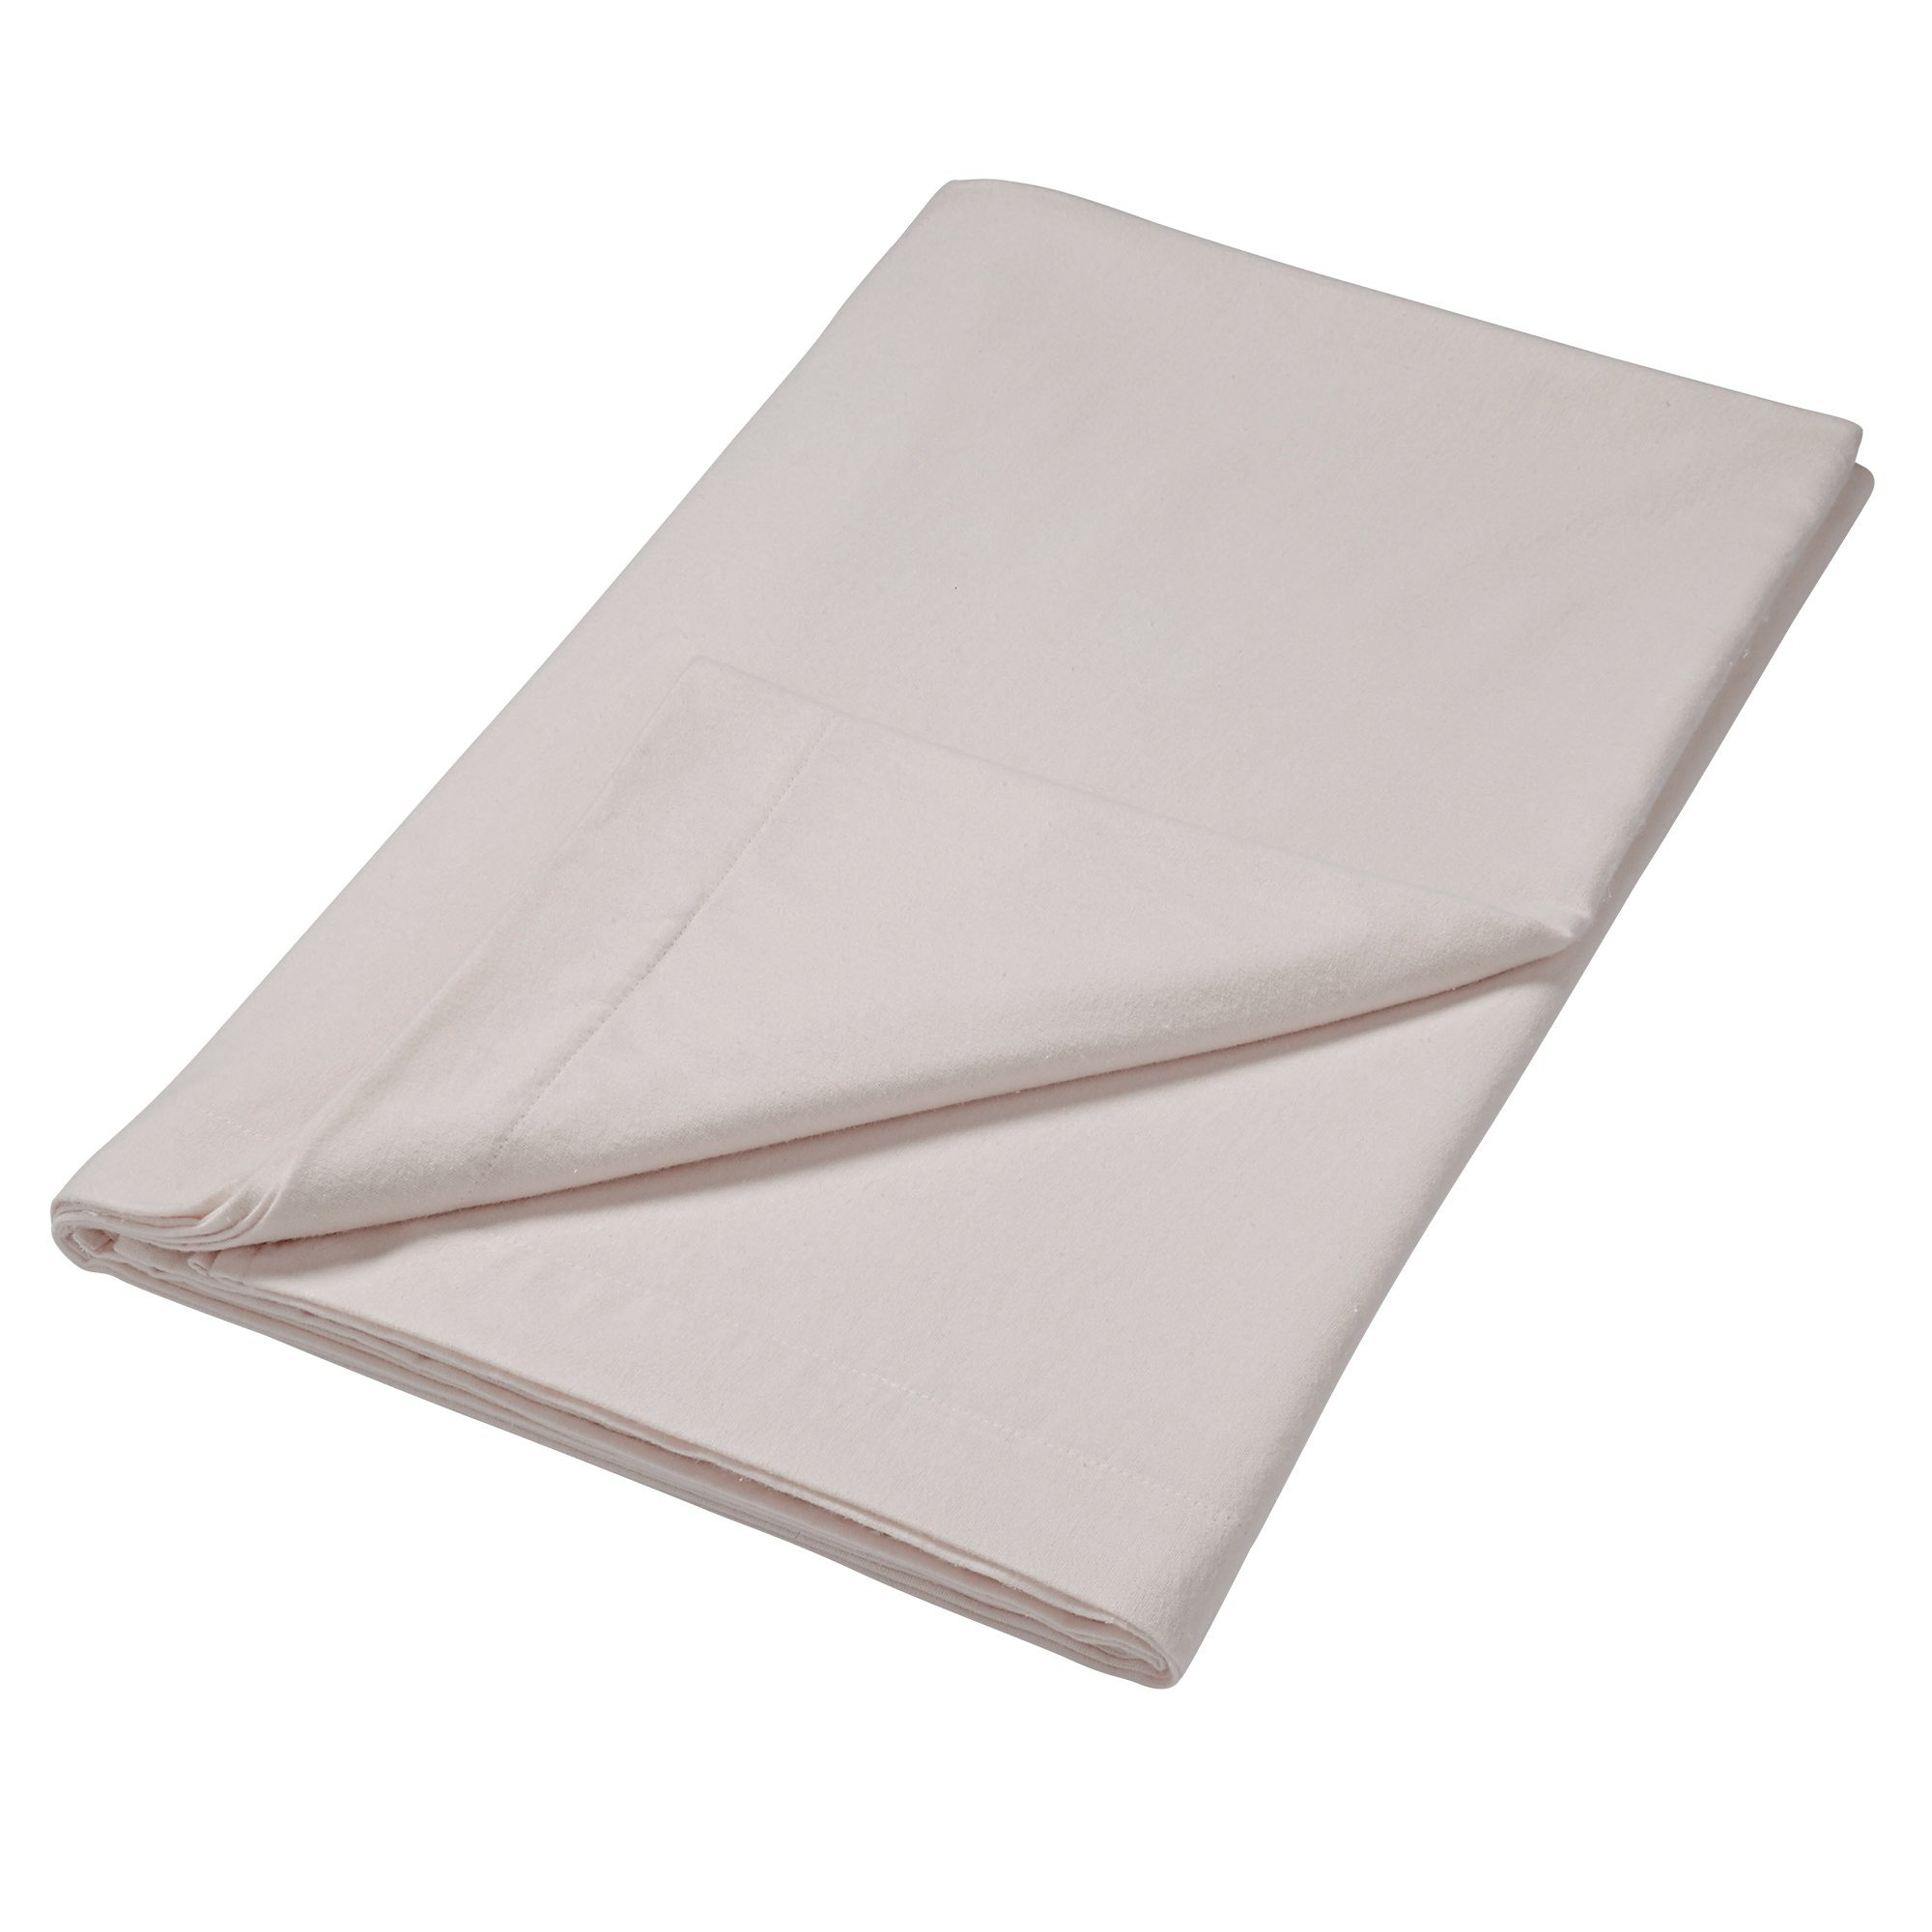 Image of 100% Brushed Cotton Silver Flat Sheet Silver